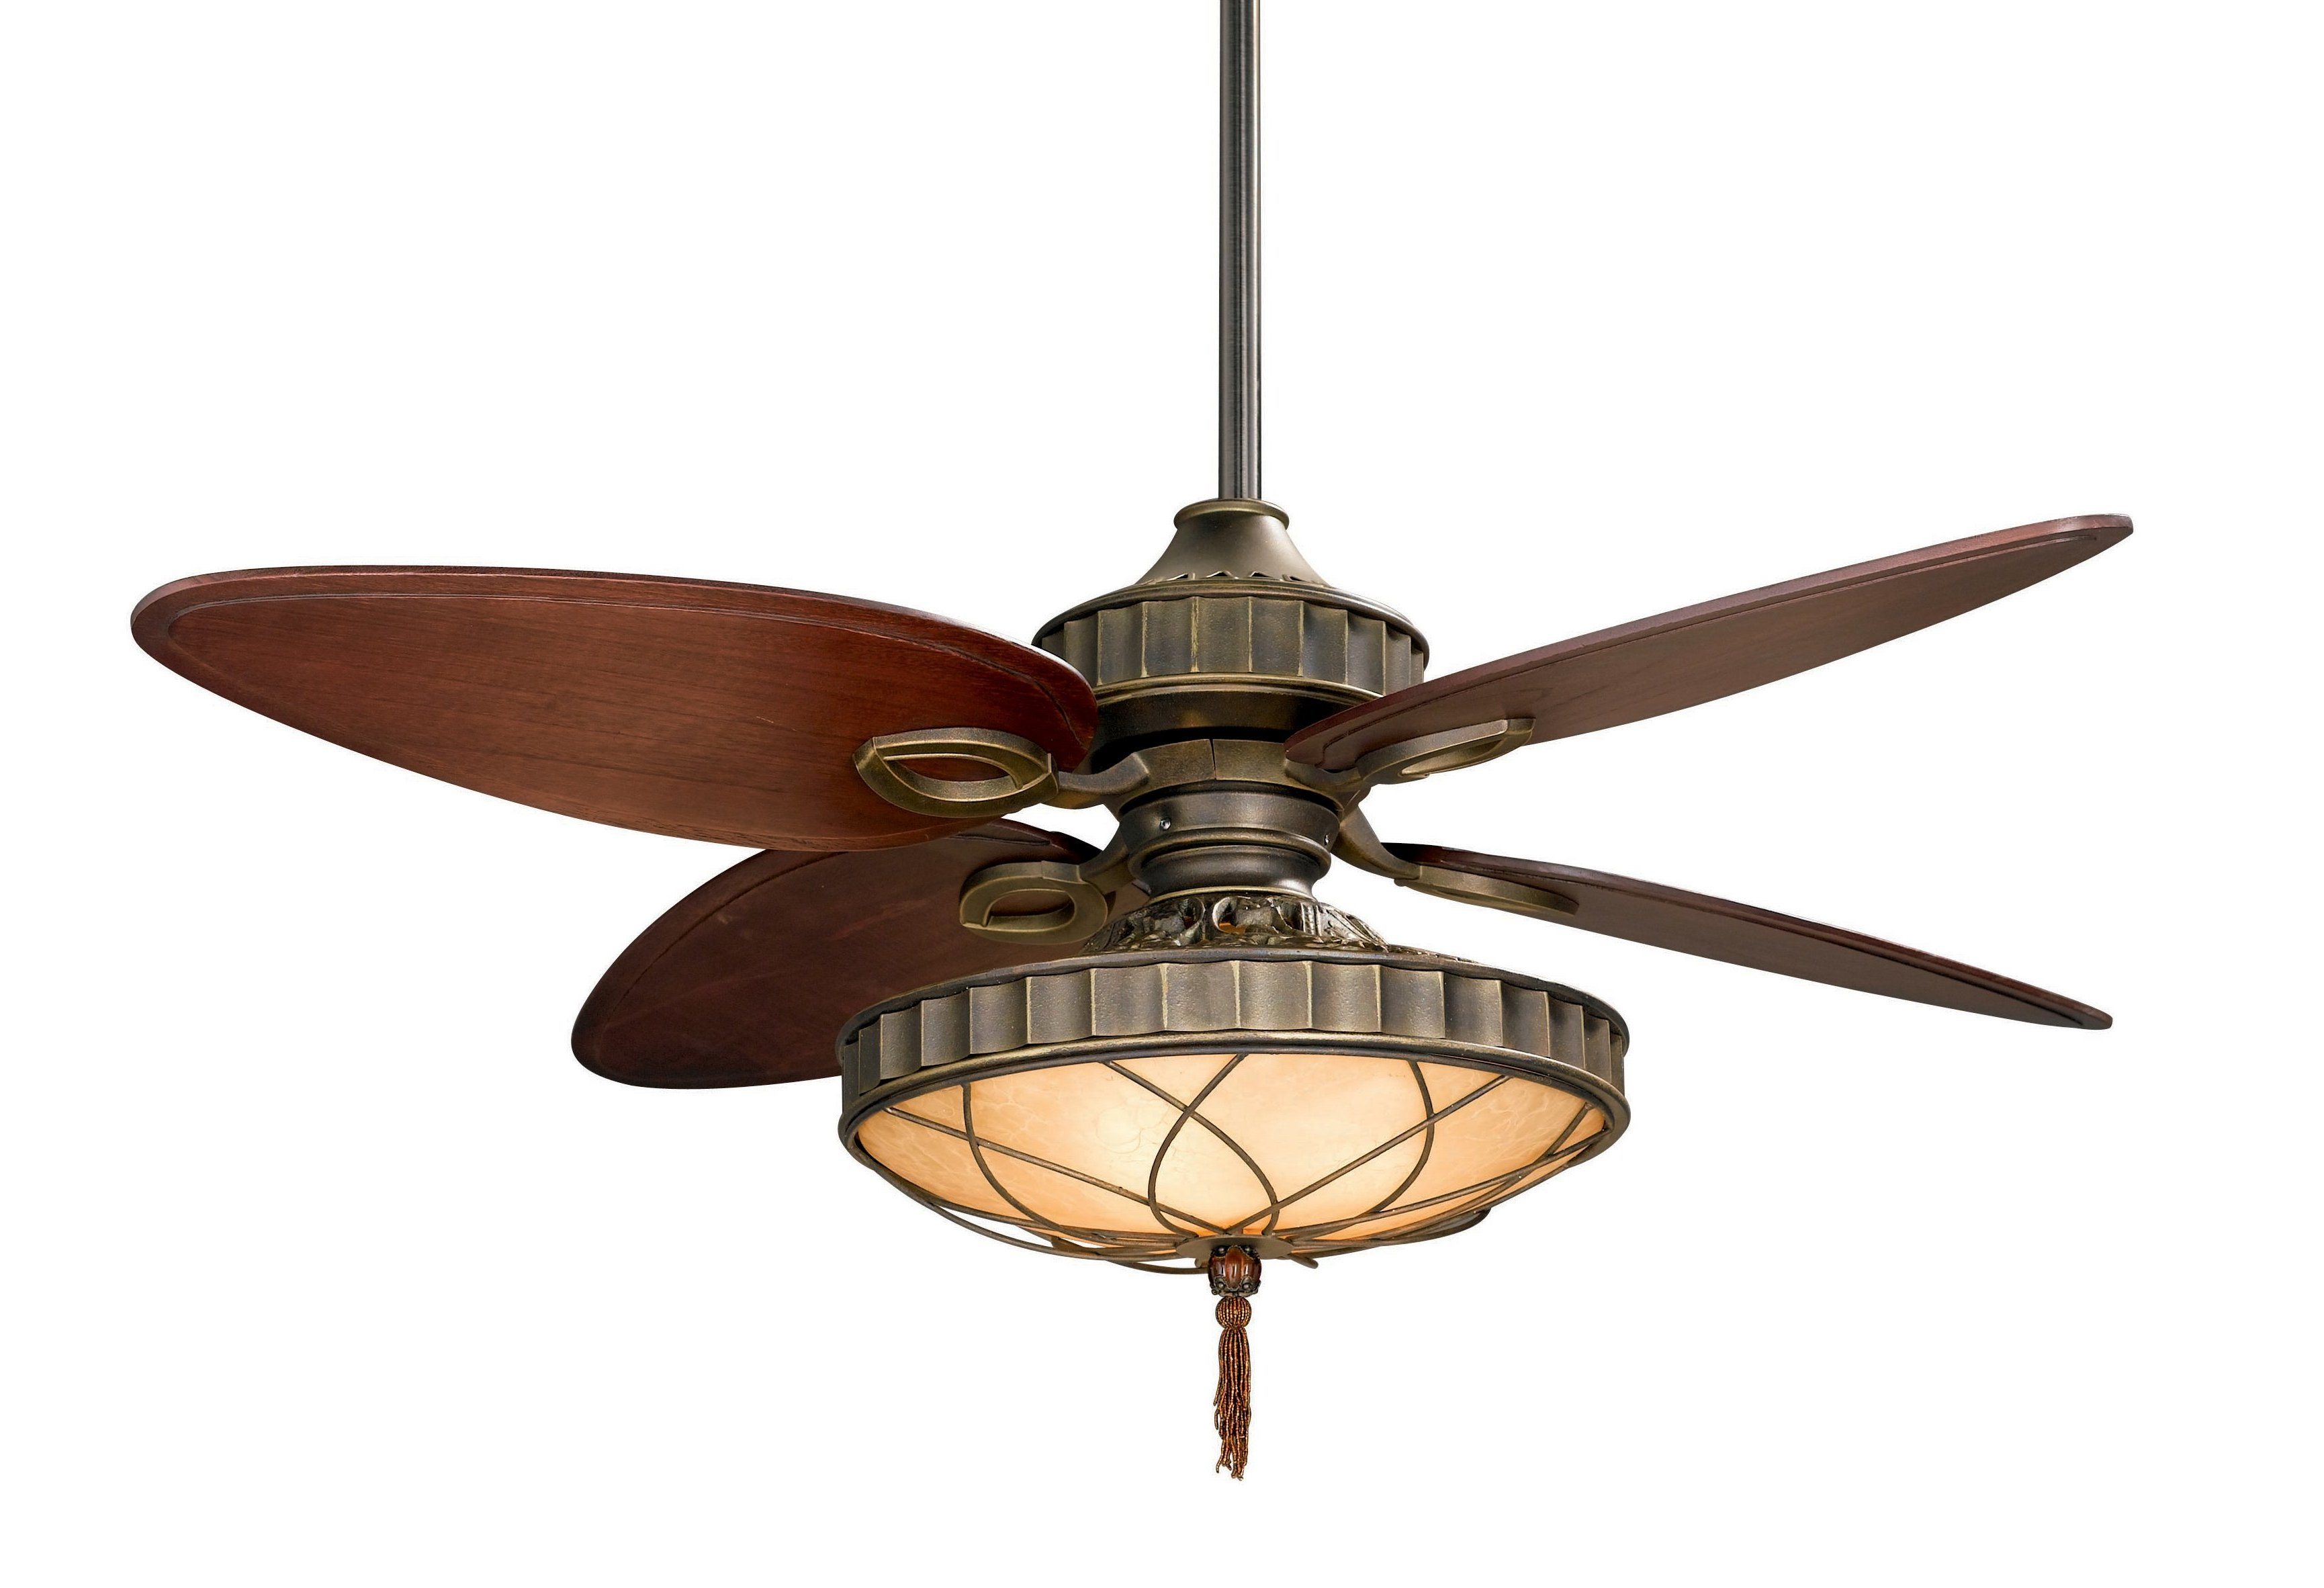 Old Fashioned Ceiling Fans With Lights